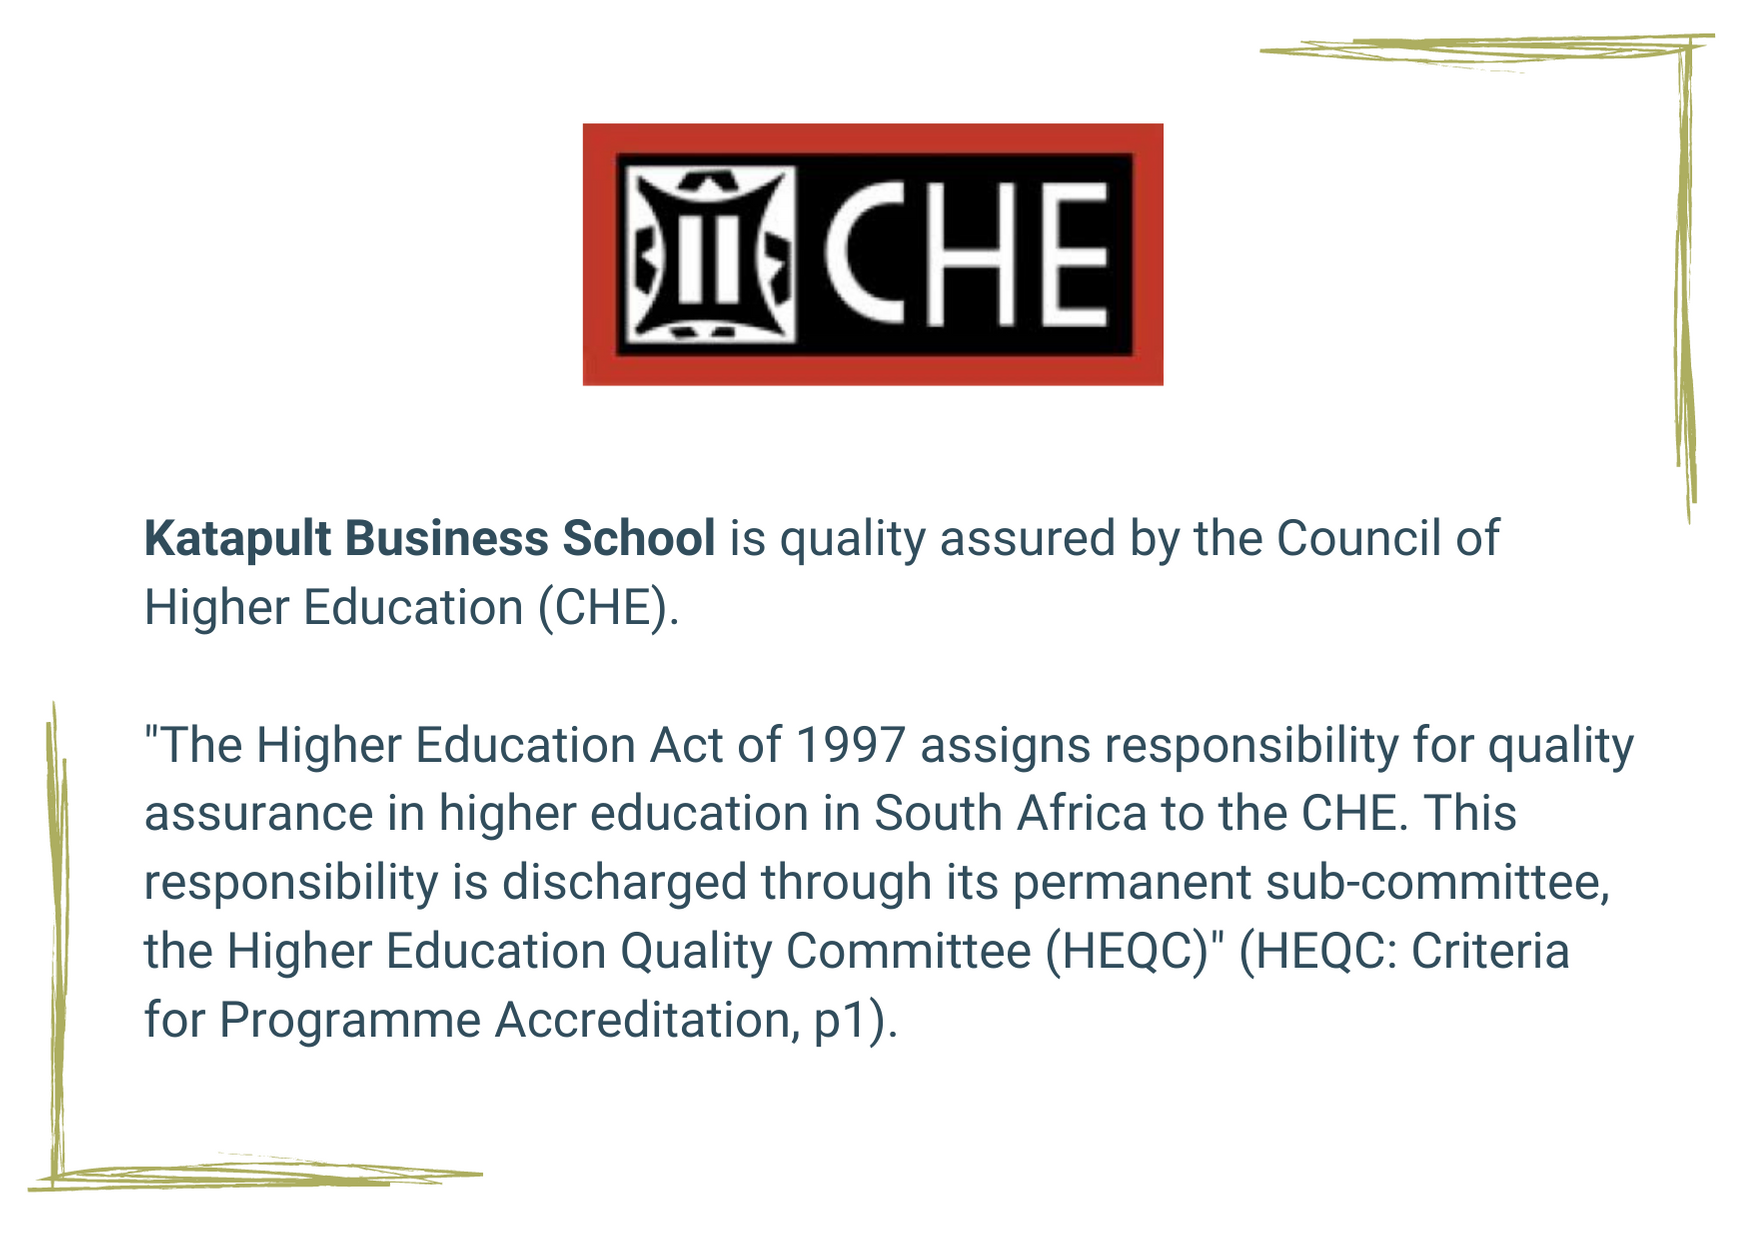 """Katapult Business School is quality assured by the Council of Higher Education (CHE). """"The Higher Education Act of 1997 assigns responsibility for quality assurance in higher education in South Africa to the CHE. This responsibility is discharged through its permanent sub-committee, the Higher Education Quality Committee (HEQC)"""" (HEQC: Criteria for Programme Accreditation, p1)."""